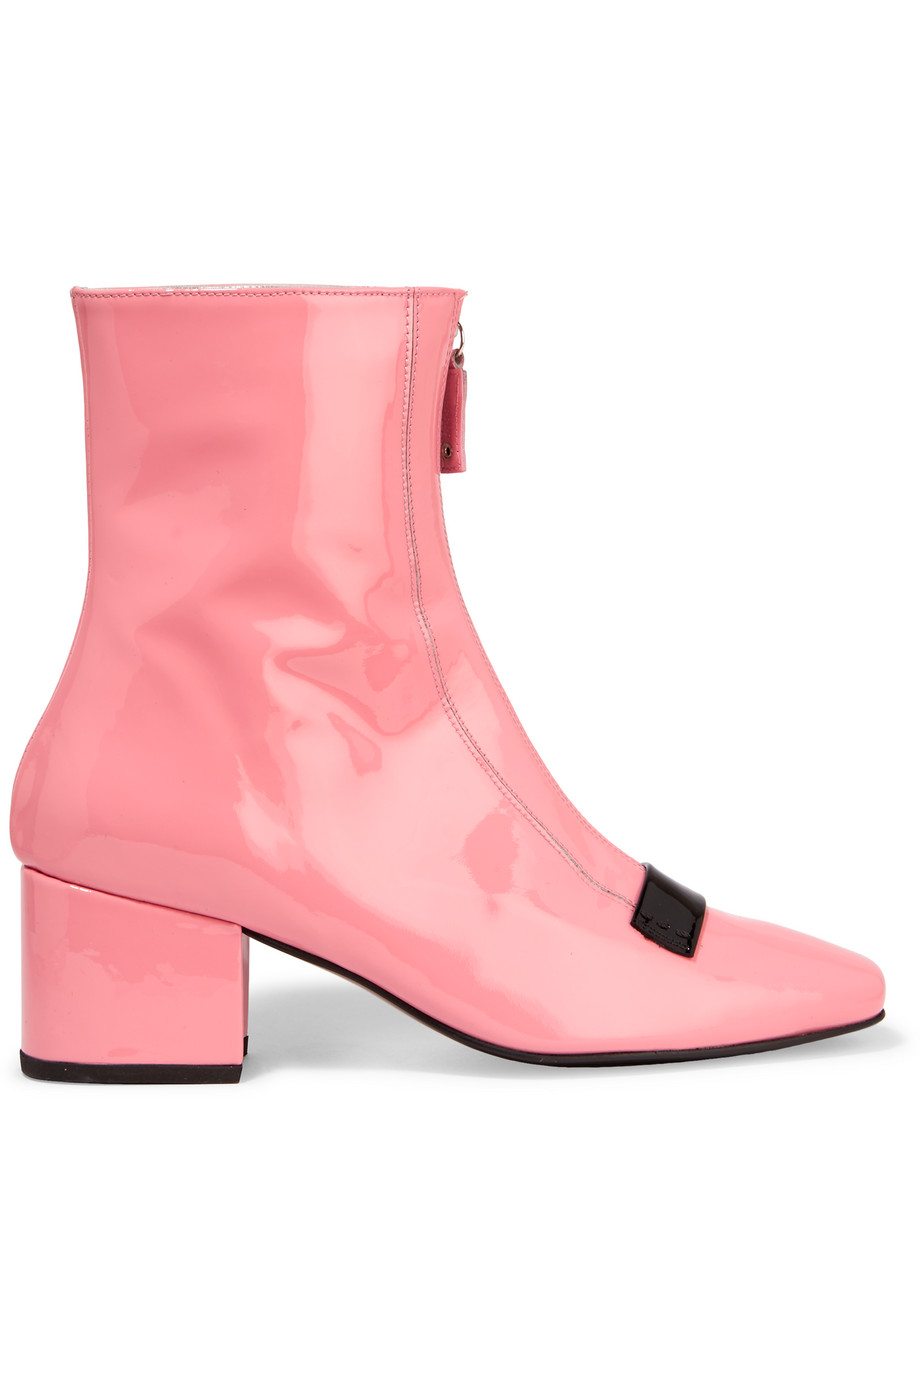 Double Delta Patent-Leather Ankle Boots, Baby Pink, Women's US Size: 10.5, Size: 41